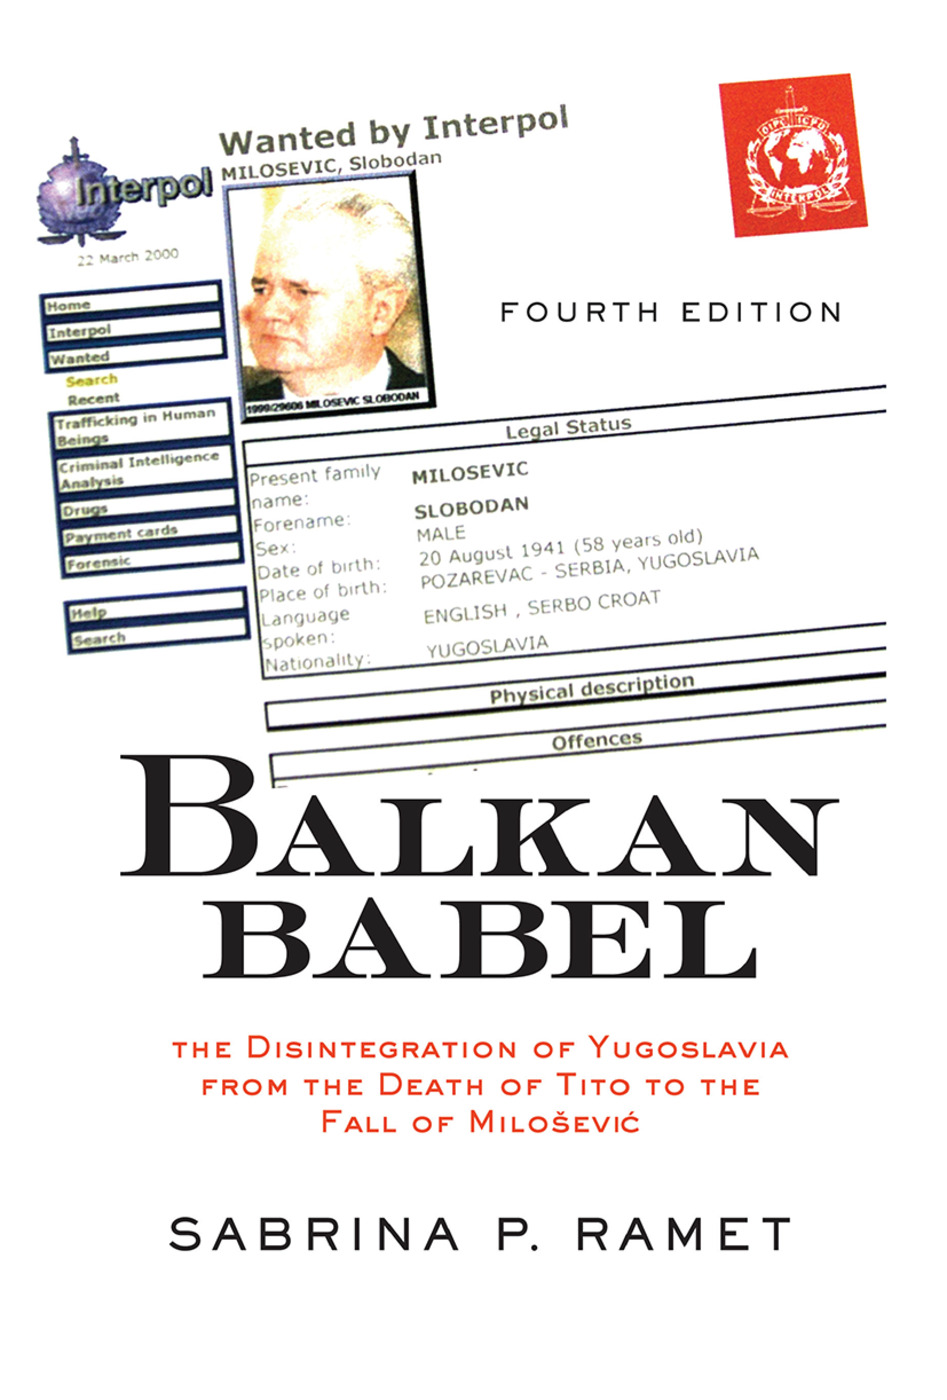 Balkan Babel: The Disintegration Of Yugoslavia From The Death Of Tito To The Fall Of Milosevic book cover